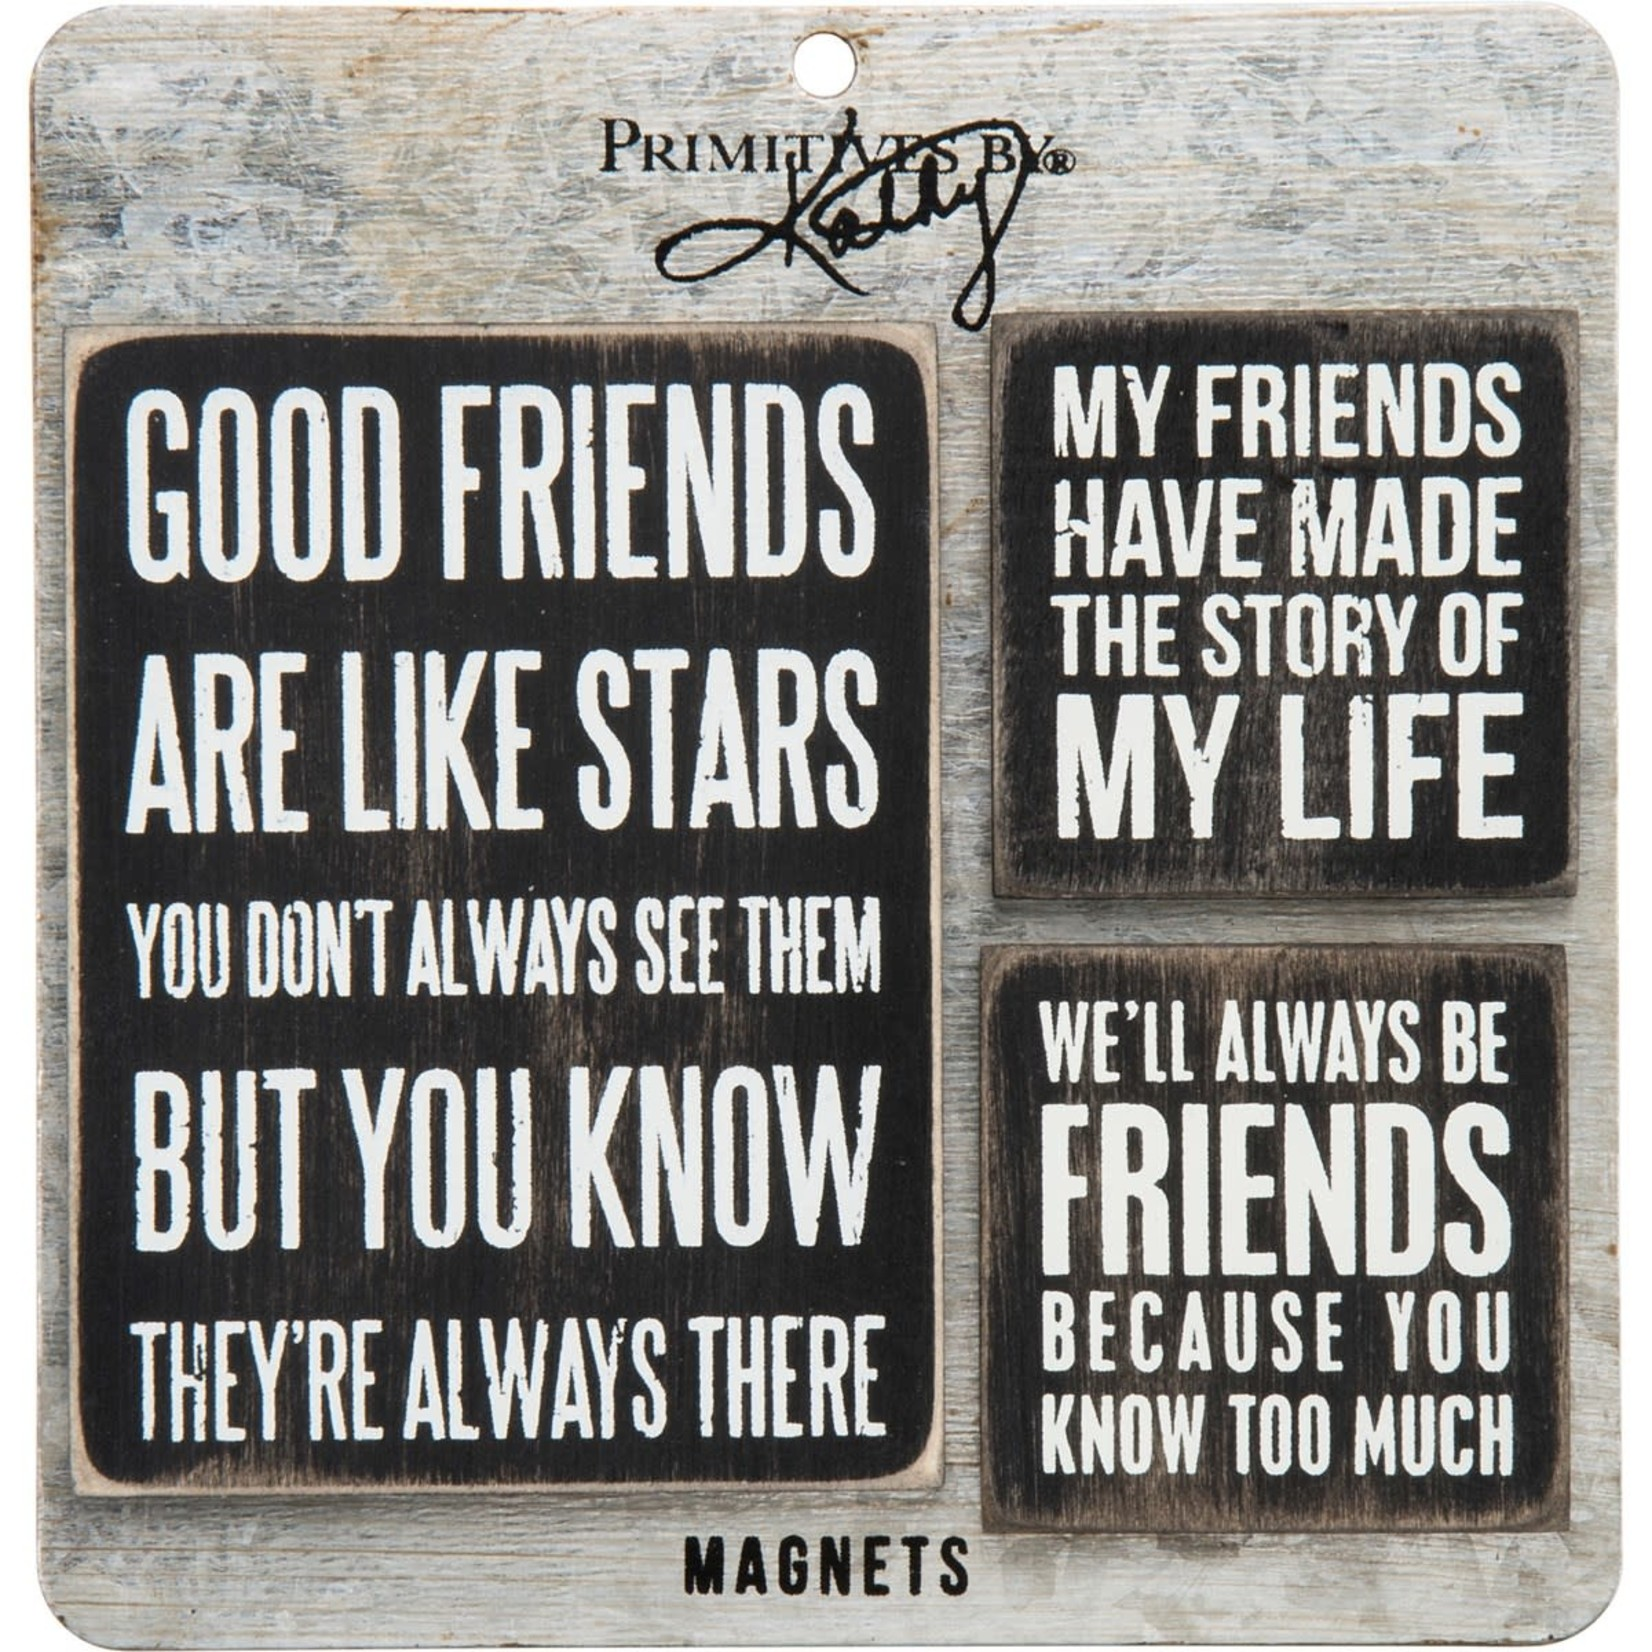 Primitives by Kathy Magnets: Friends